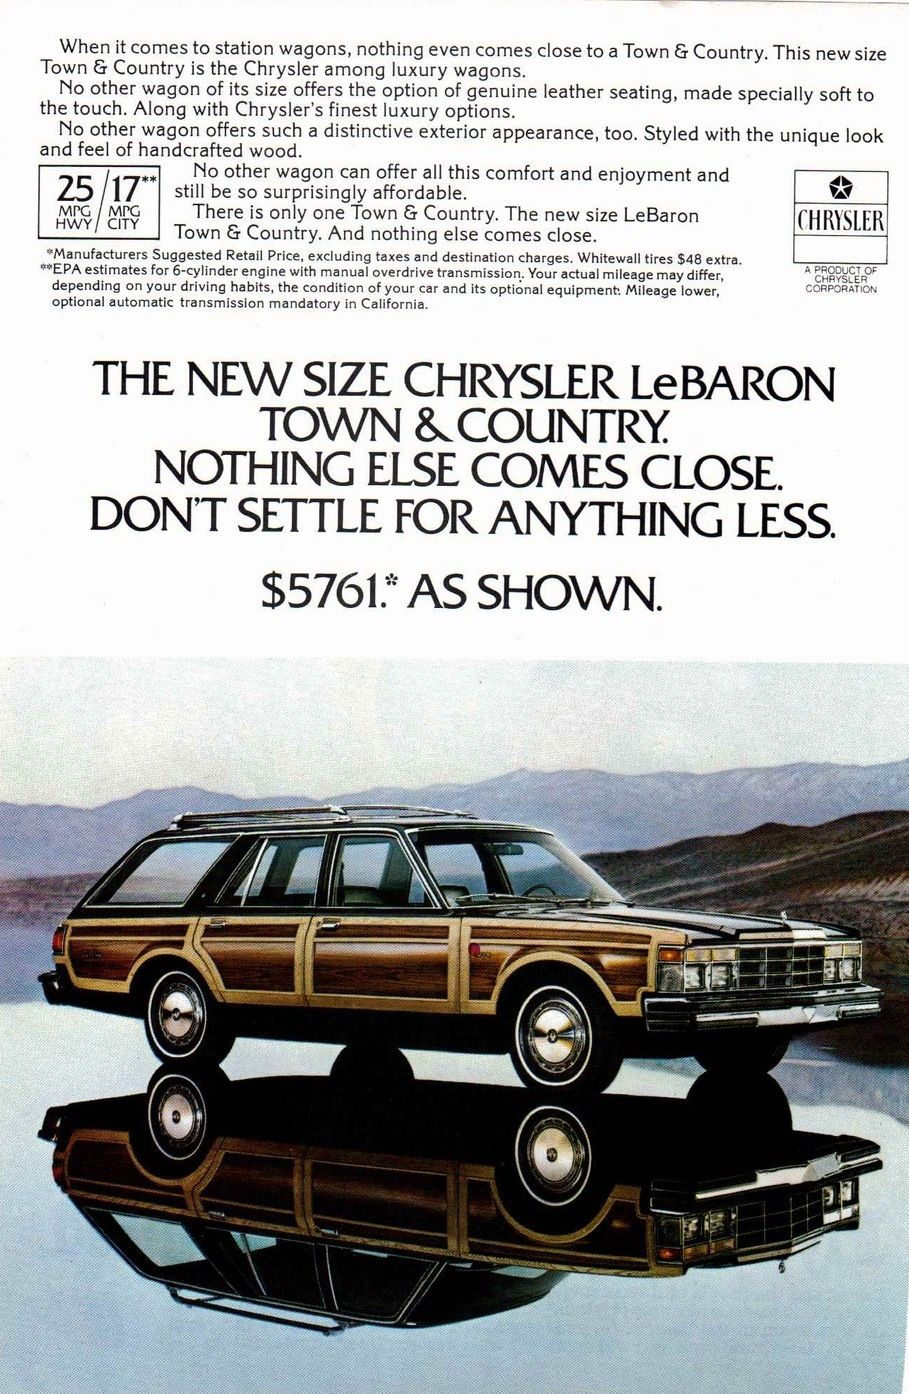 1978 chrysler lebaron town and country station wagon jpm 1978 chrysler lebaron town and country station wagon jpm entertainment fandeluxe Gallery